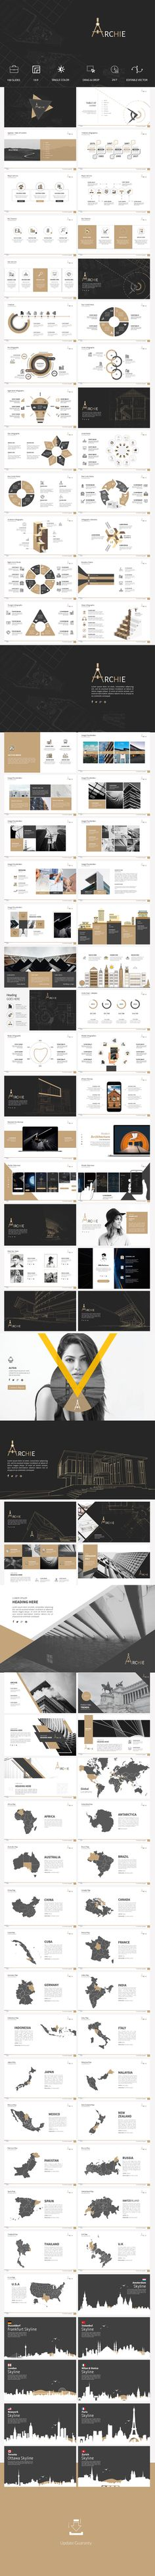 Archie Presentation Template - #Business #PowerPoint #Templates Download here: graphicriver.net/...